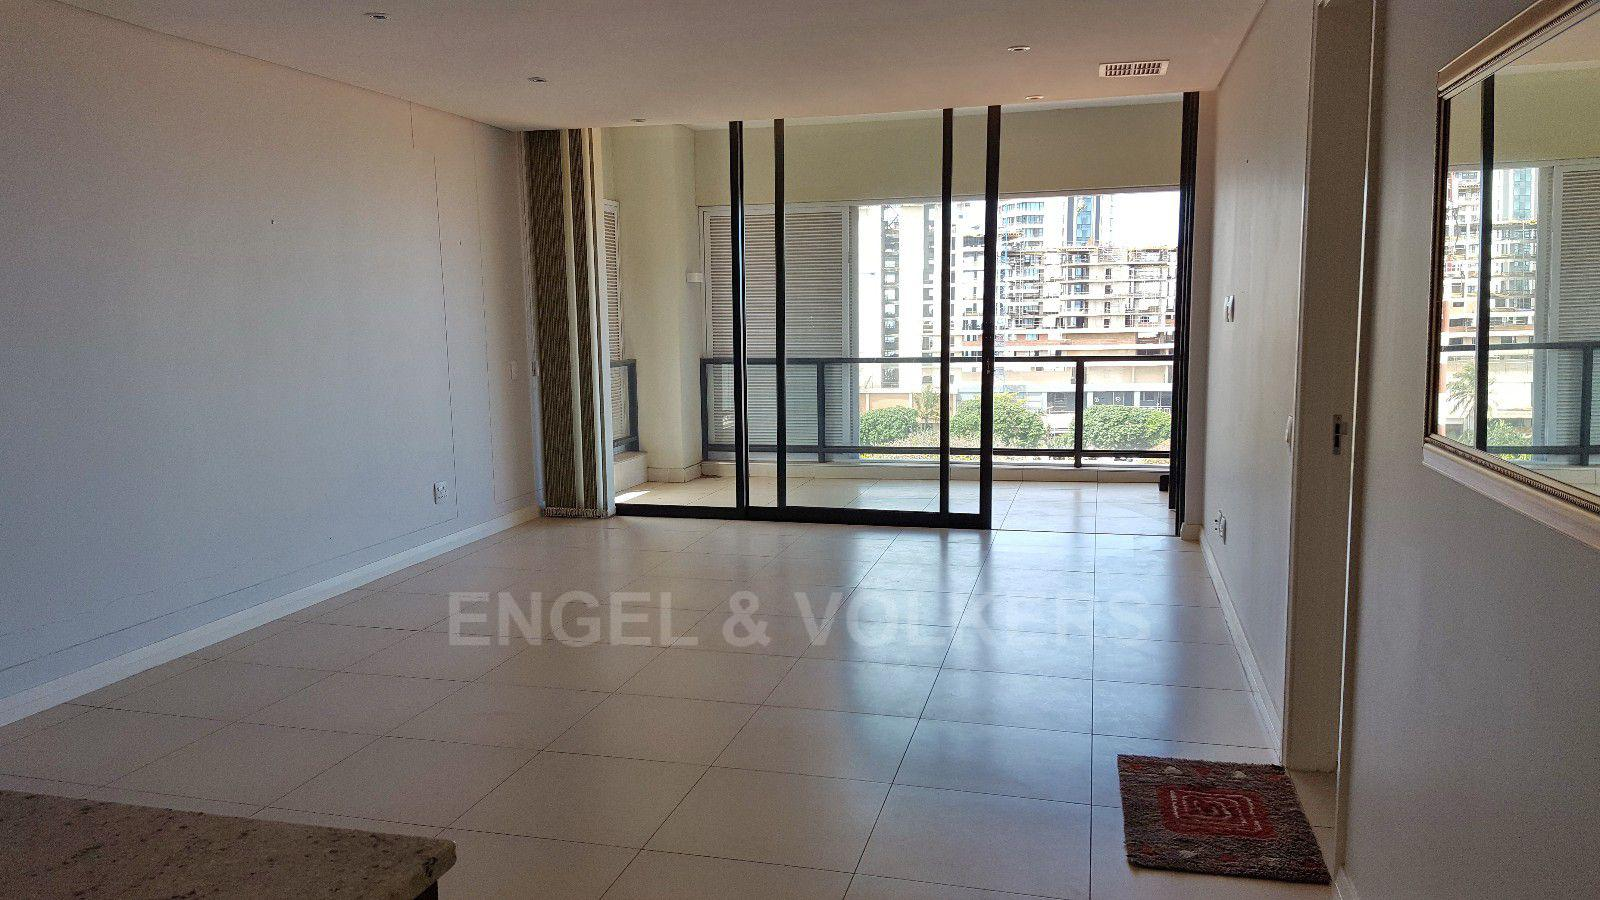 Umhlanga Rocks for sale property. Ref No: 13400359. Picture no 4